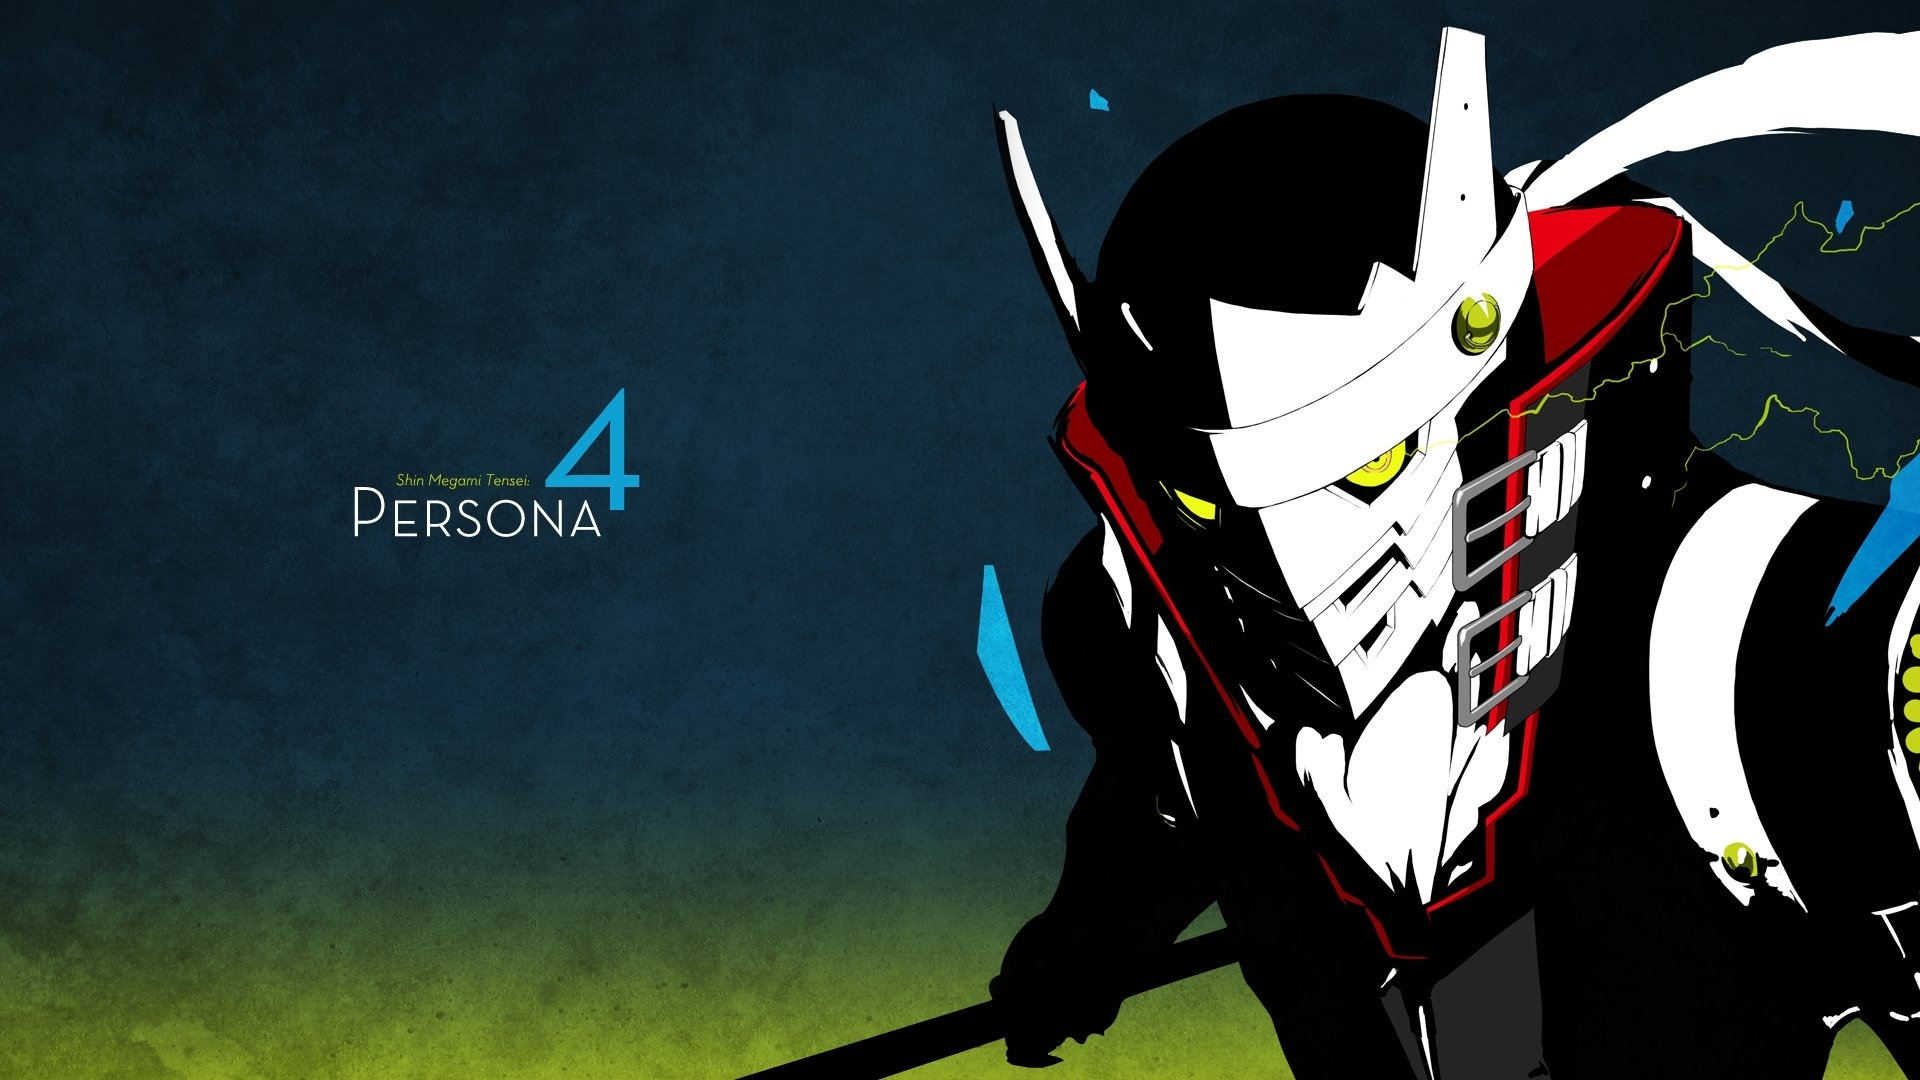 145 persona 4 hd wallpapers | background images - wallpaper abyss